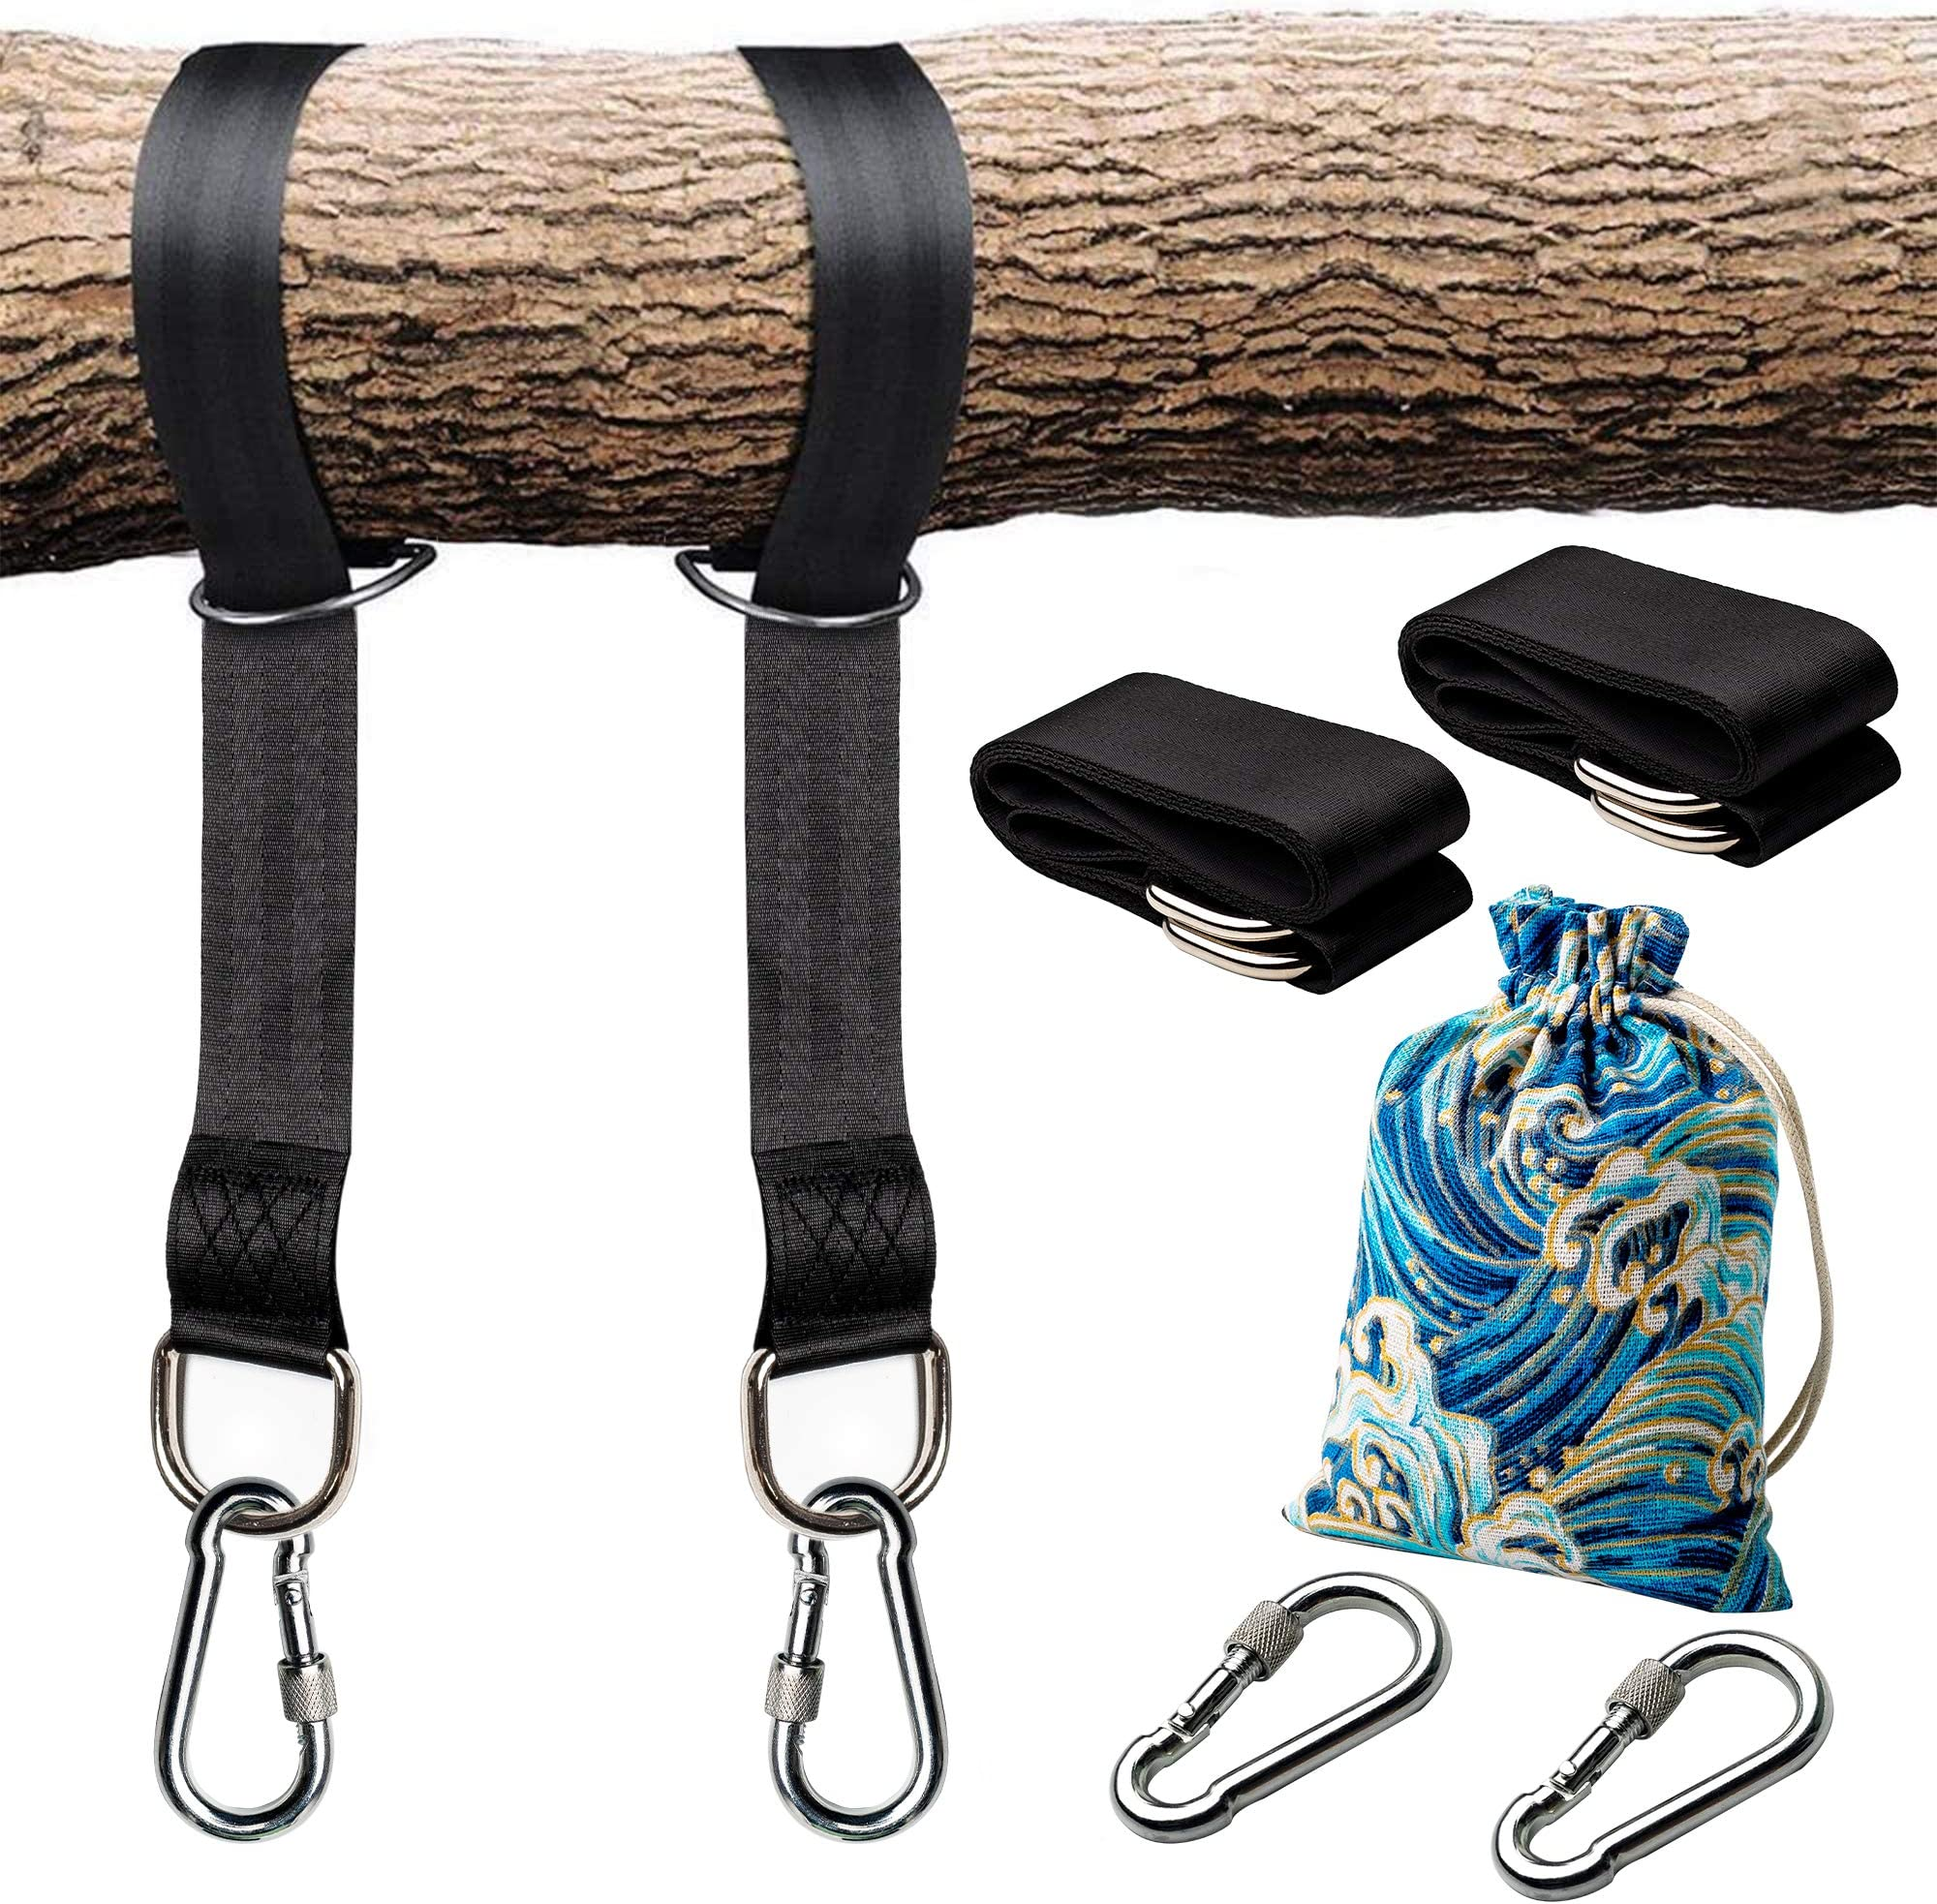 Tree Swing Straps Hanging Kit Two Straps Extra Long w// Safer Lock Width 50mm